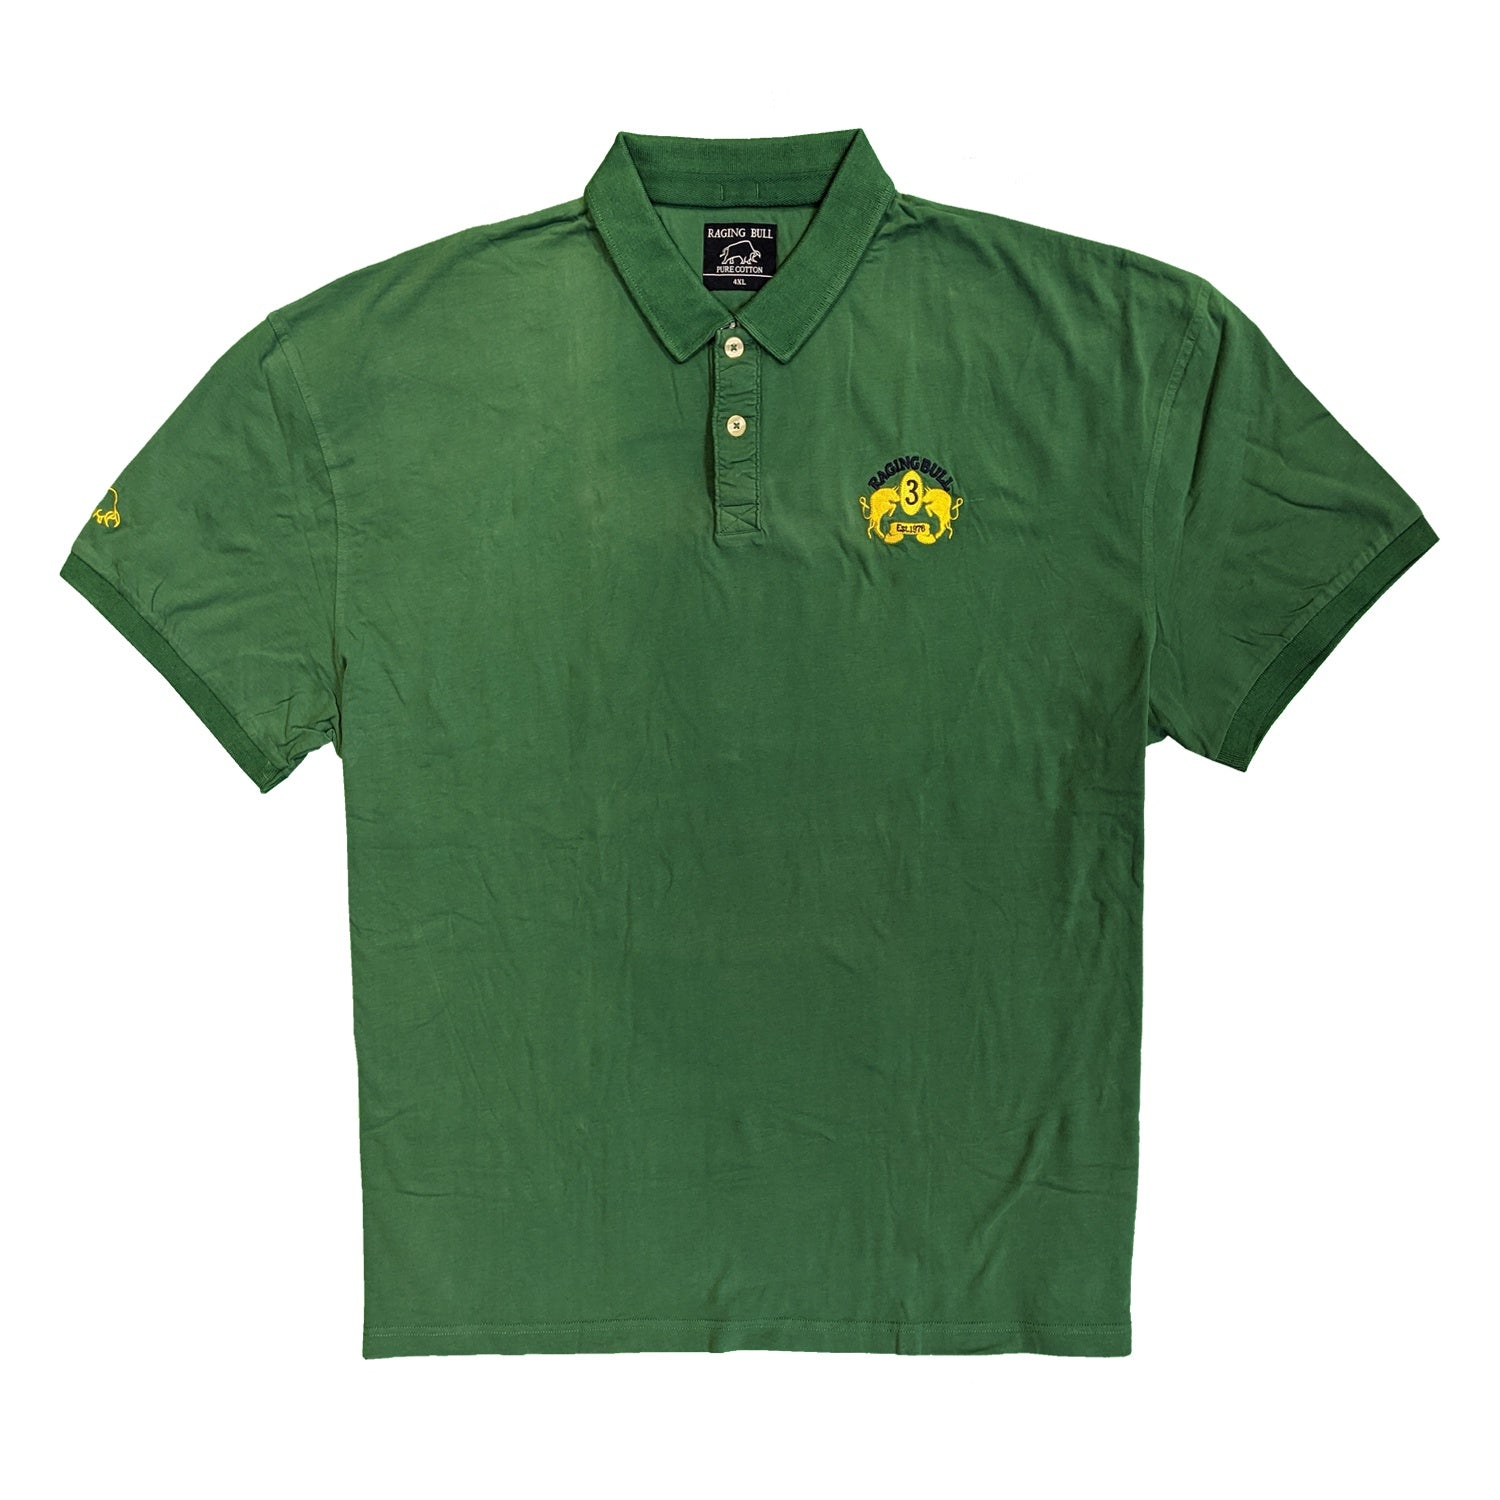 Raging Bull Trad Crest Jersey Polo - AW1213 - Forest Green 1